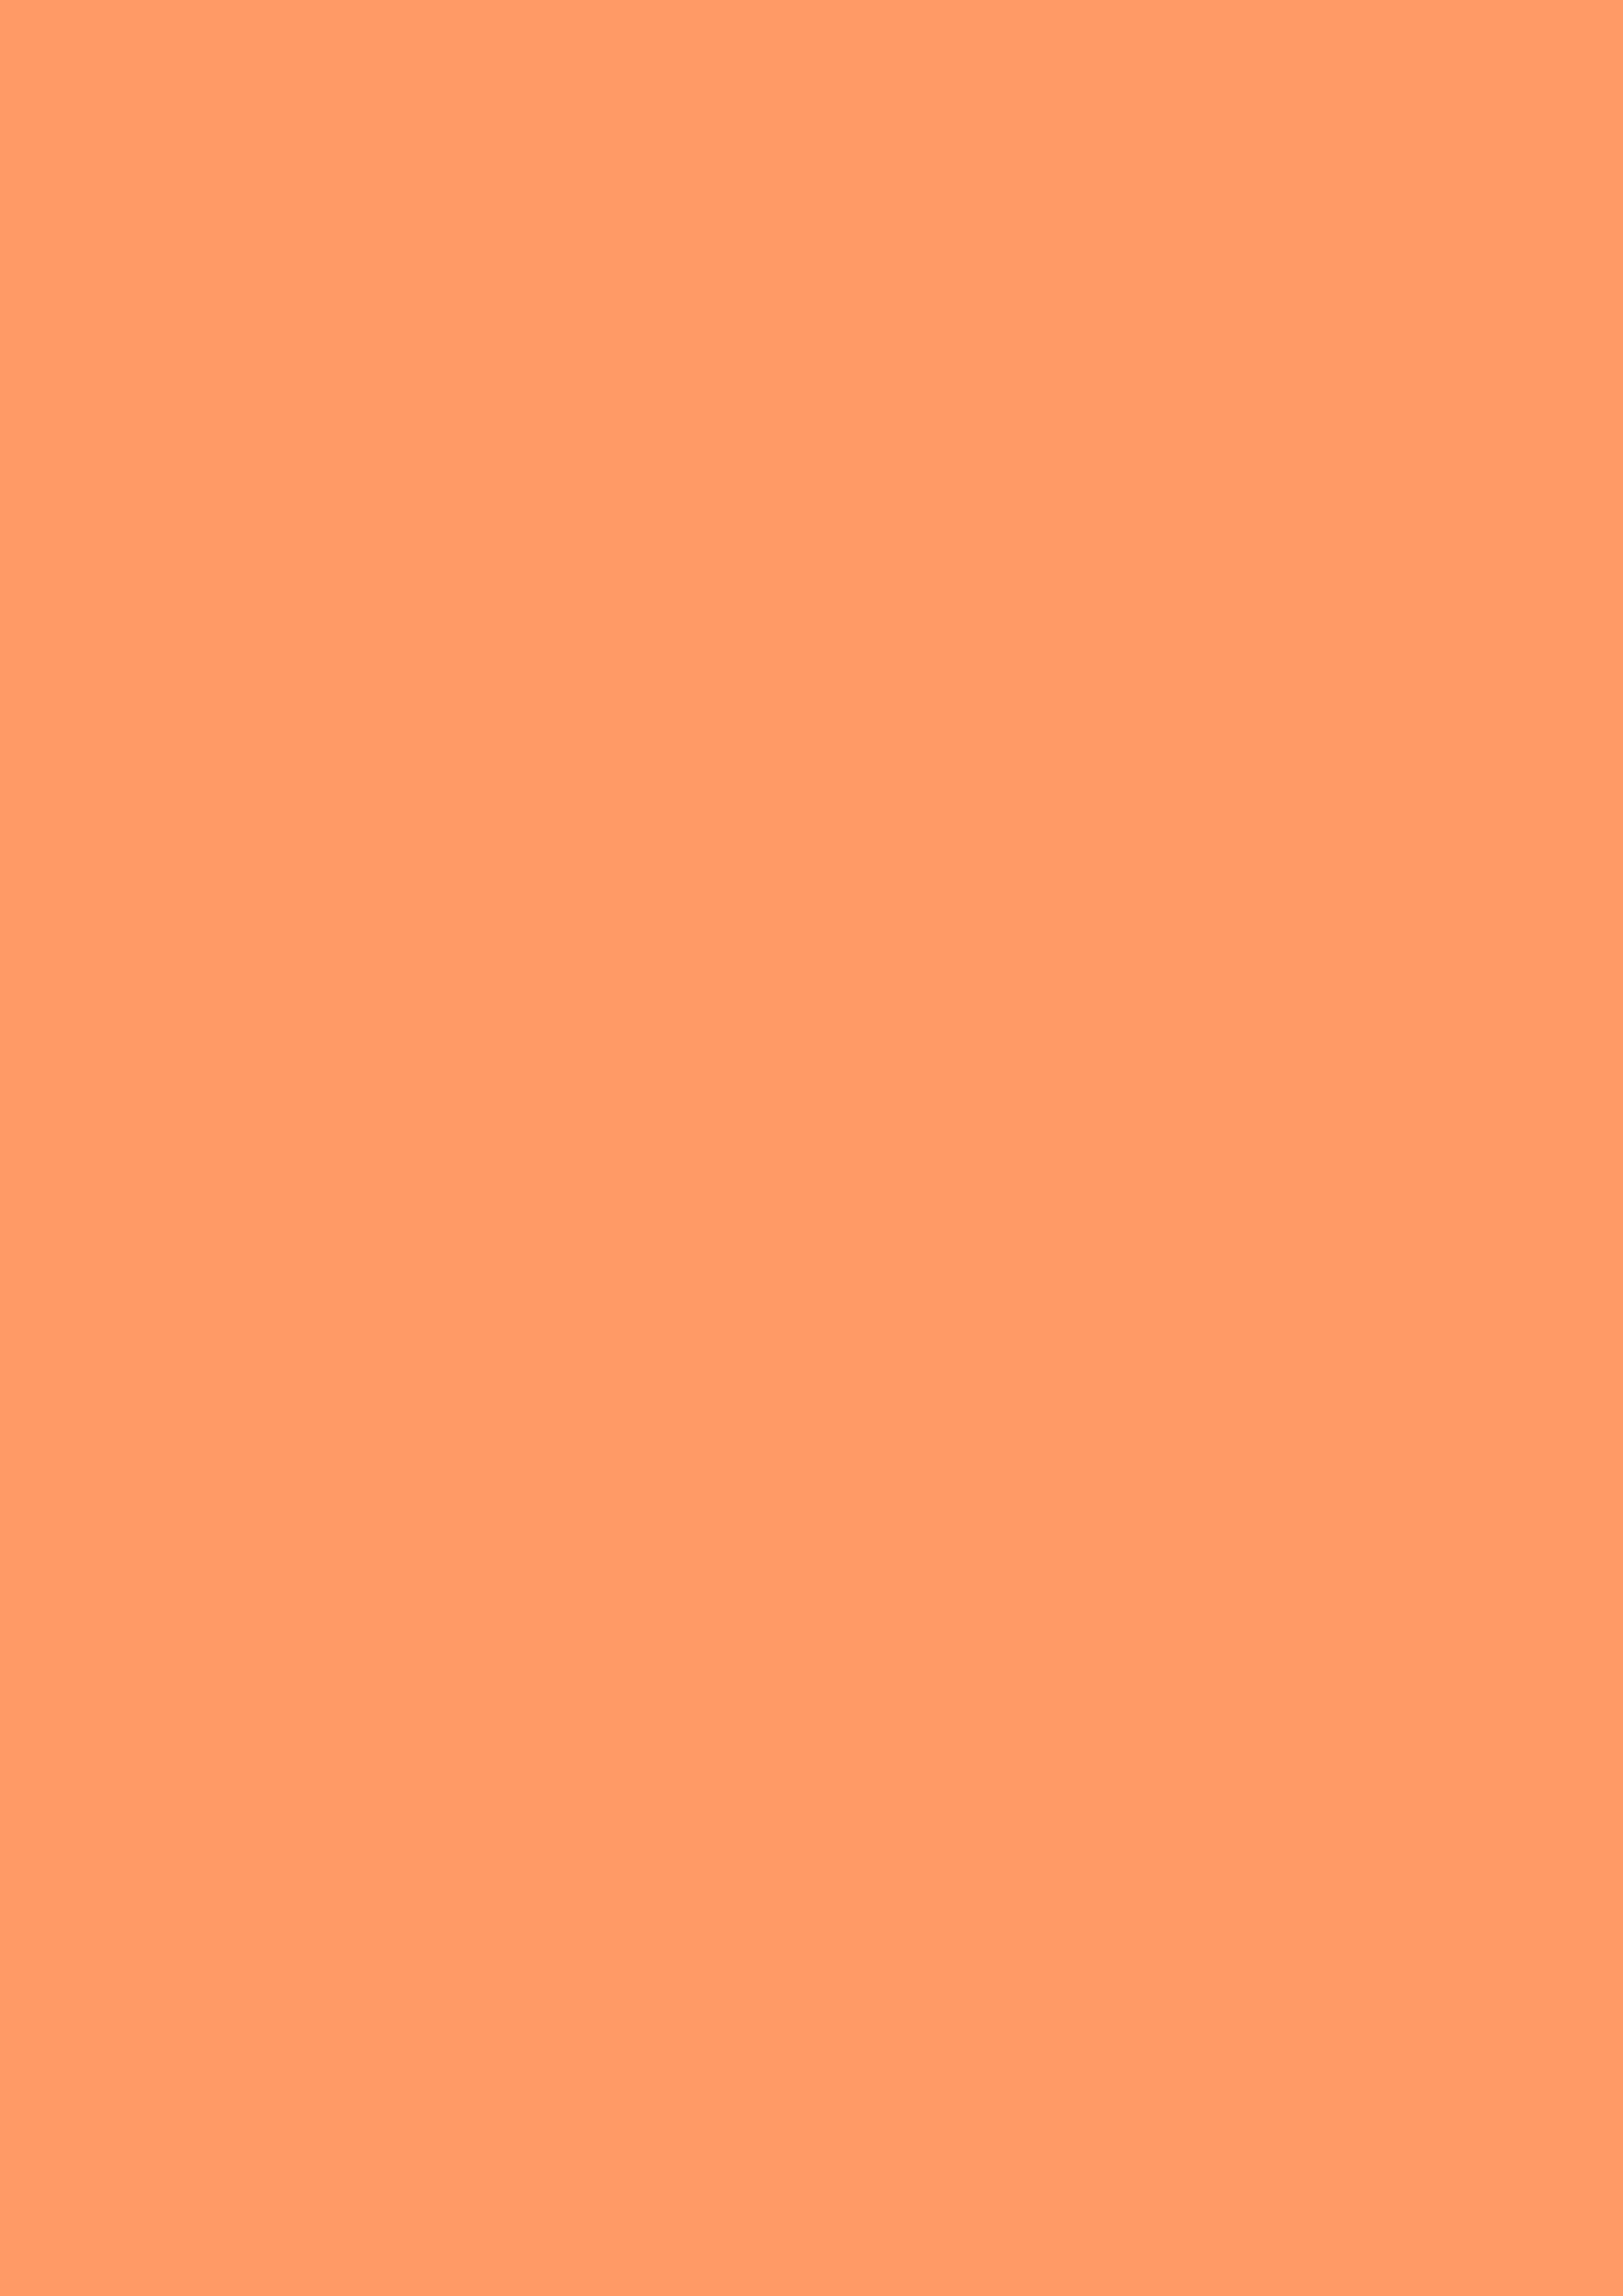 2480x3508 Atomic Tangerine Solid Color Background